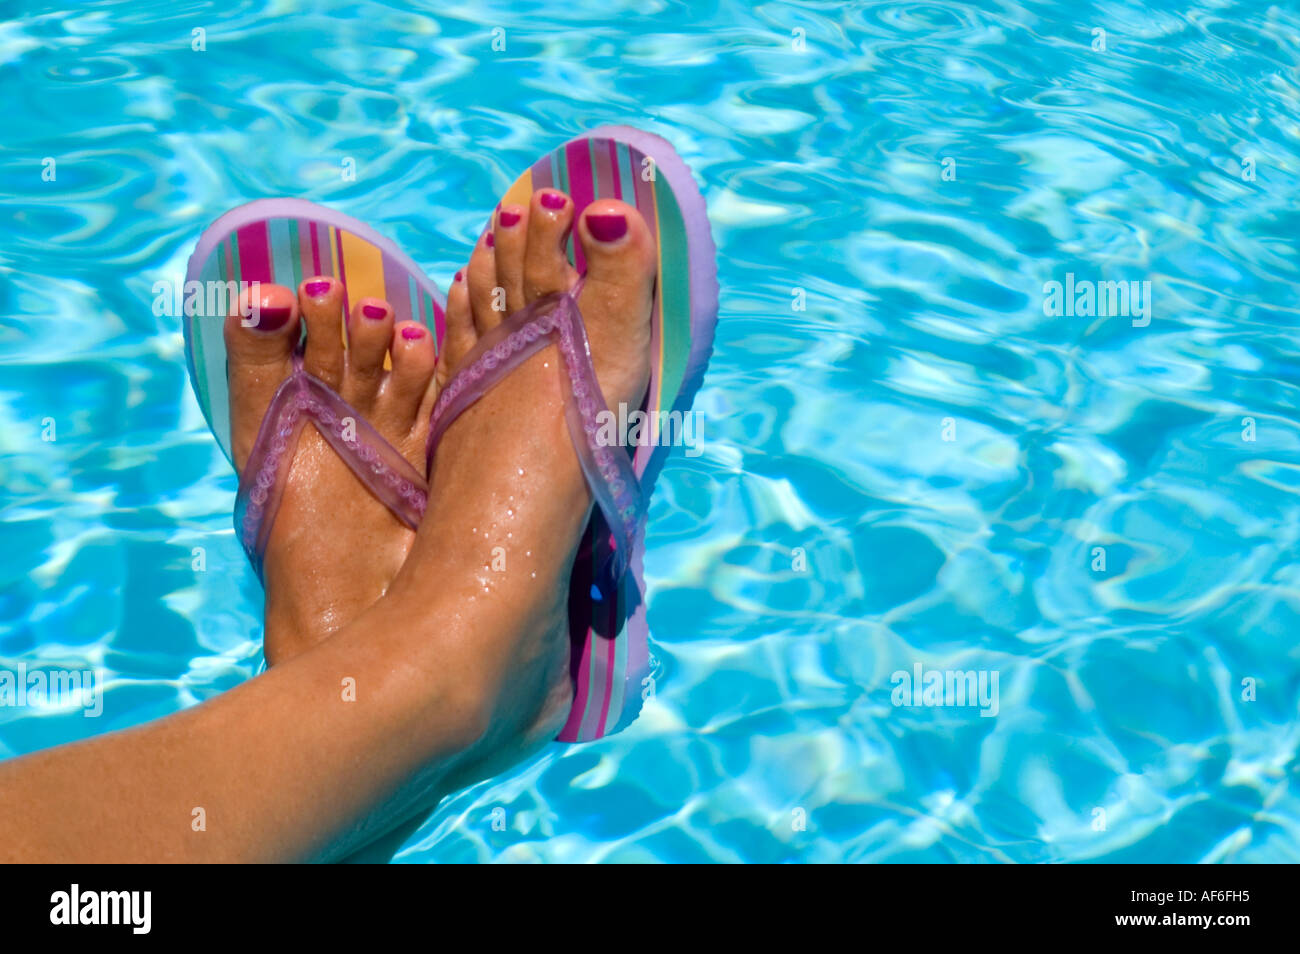 b03443b9a Horizontal close up of a woman s tanned feet with painted toenails wearing  striped flip flops against